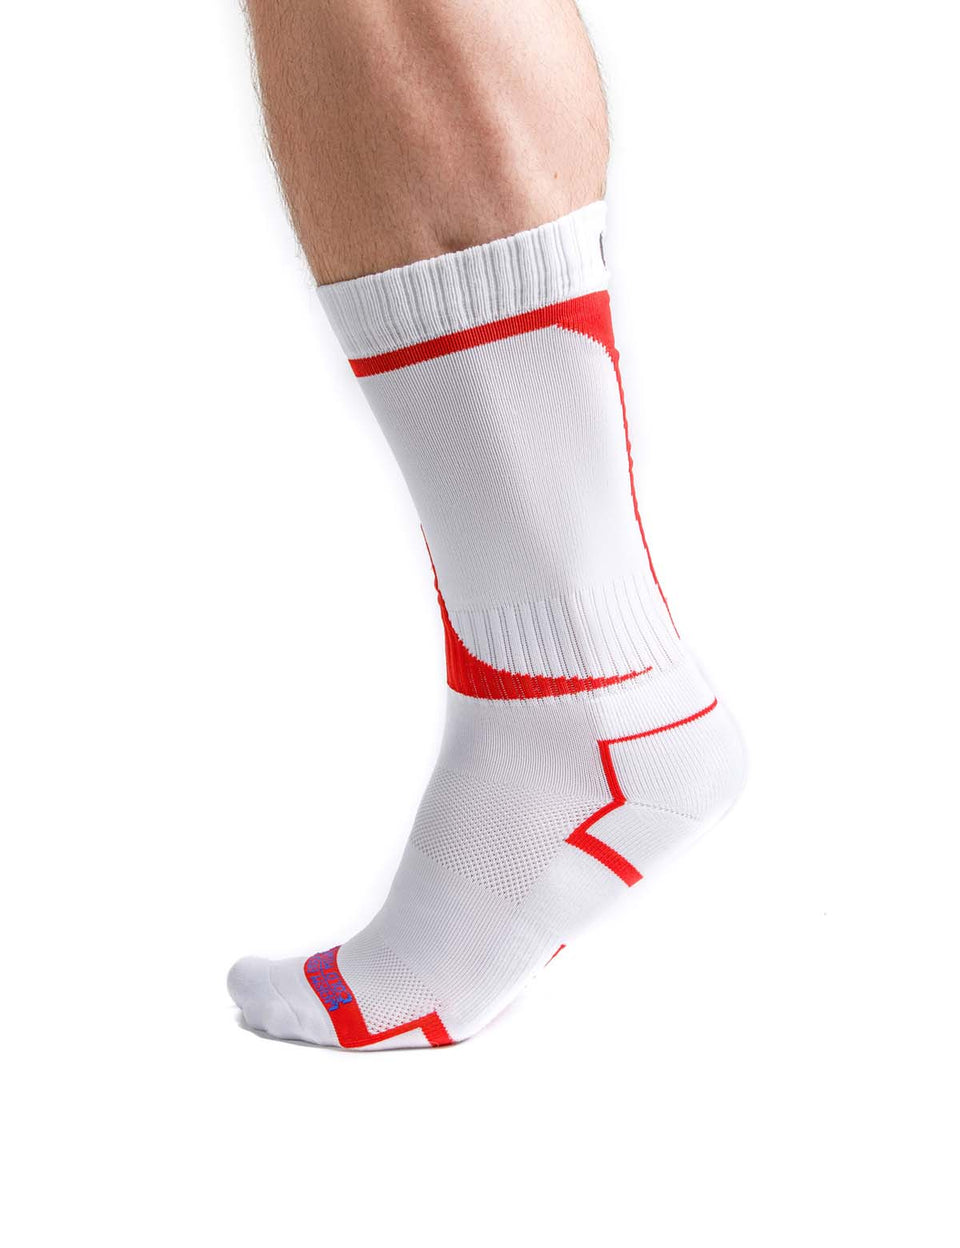 weightlifting crossfit socks